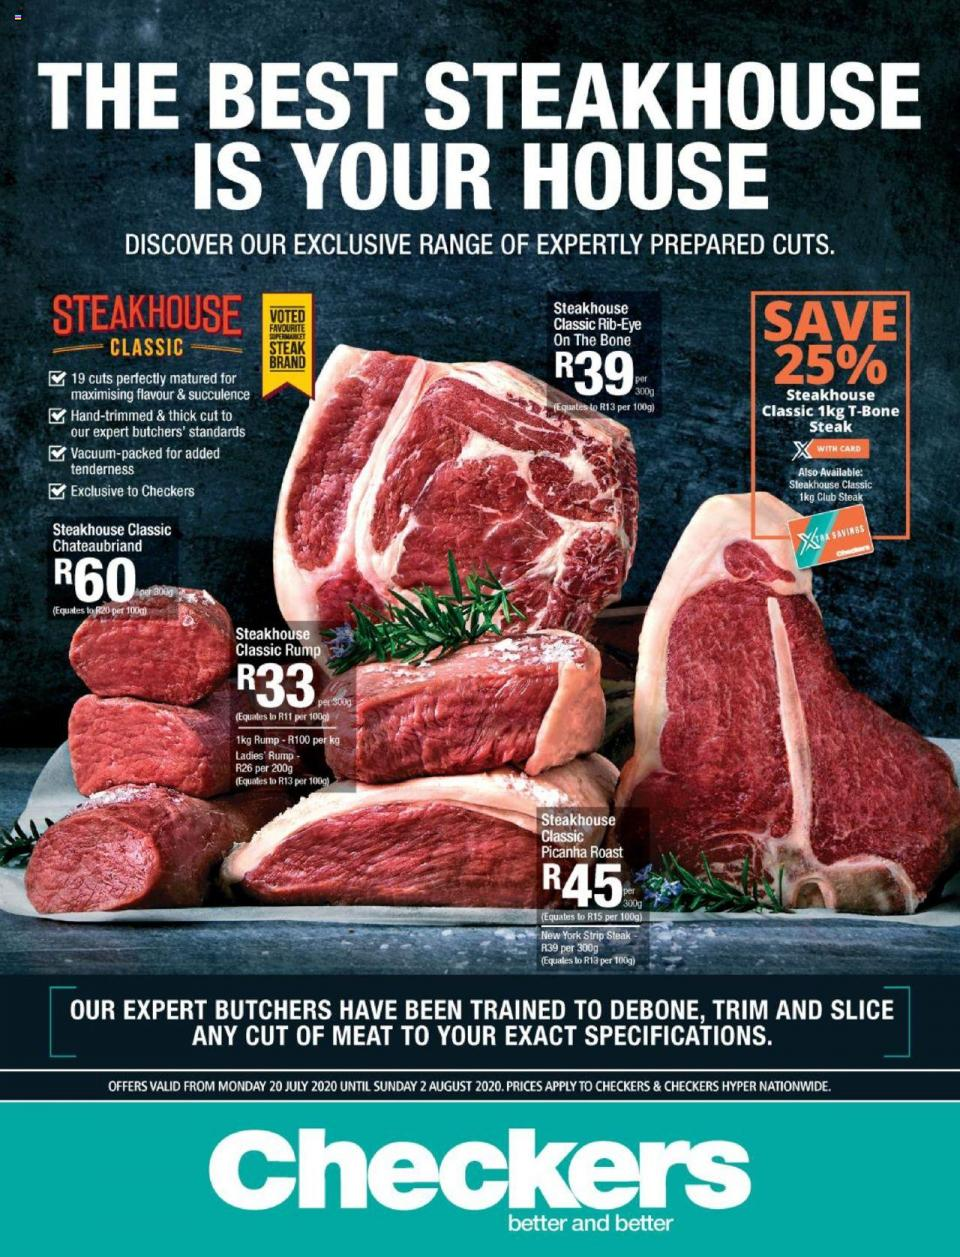 checkers specials butchery promotion 20 july 2020